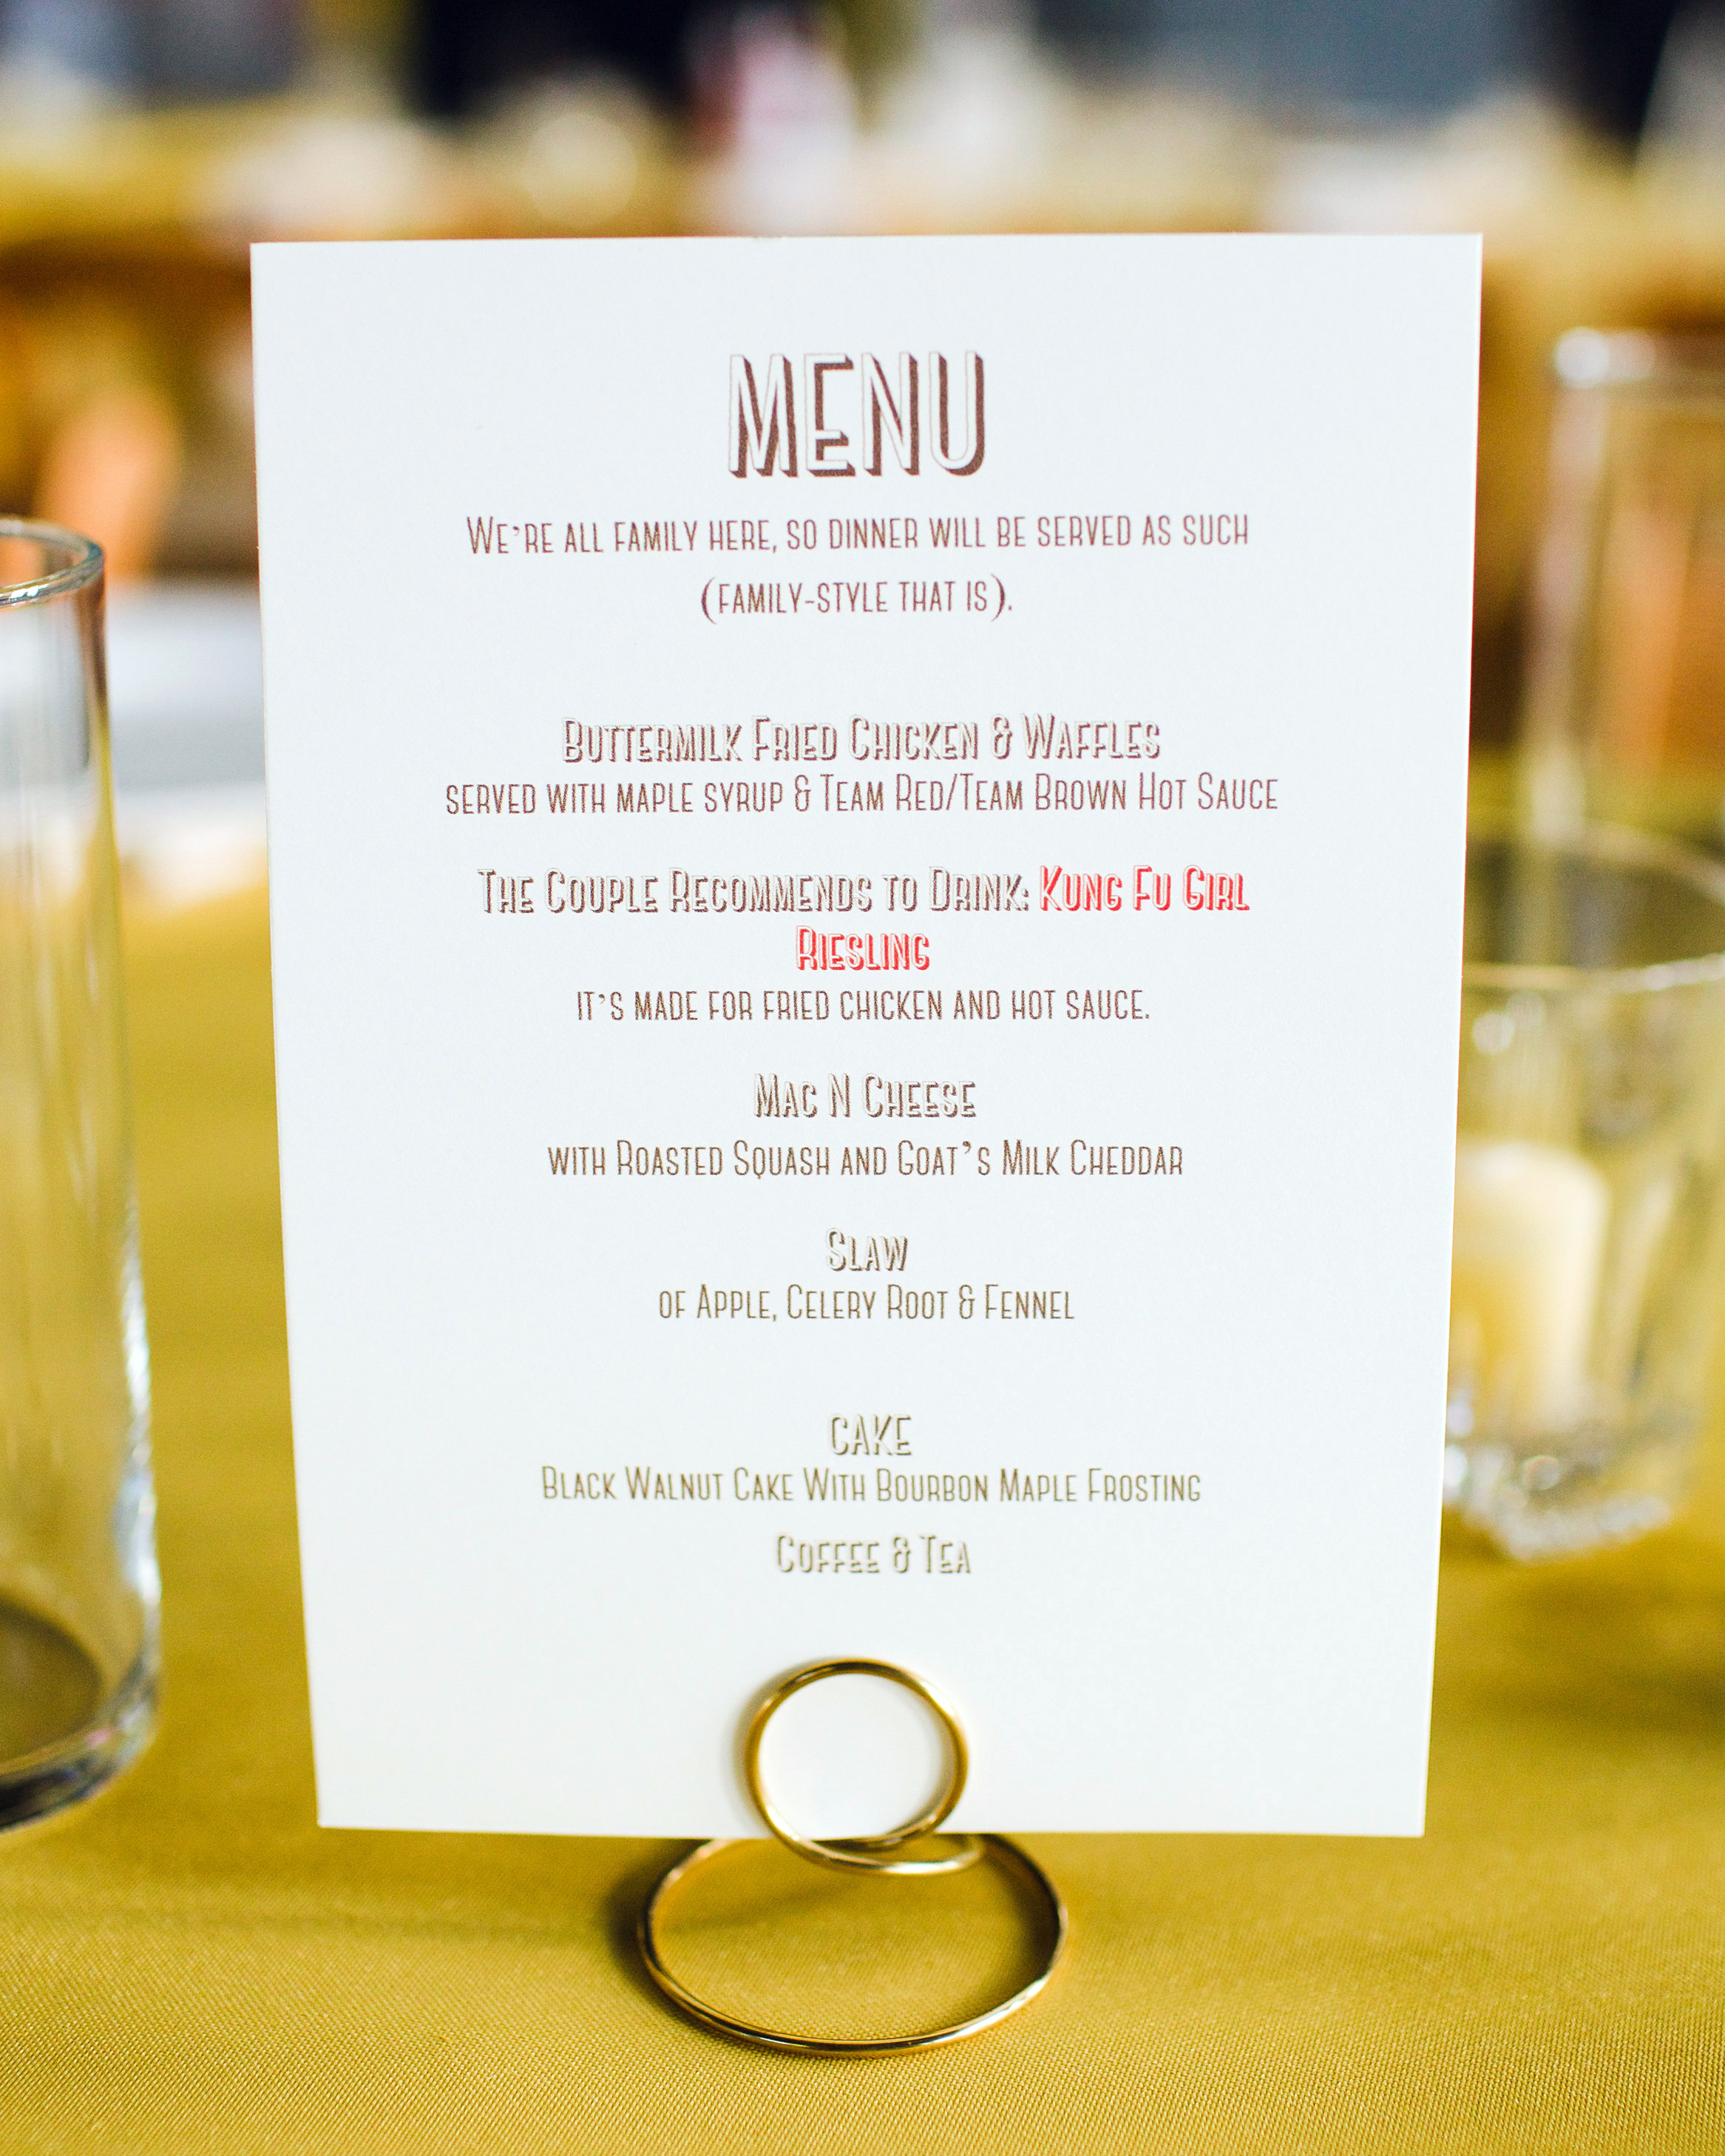 lauren-jake-wedding-menu-6914-s111838-0315.jpg